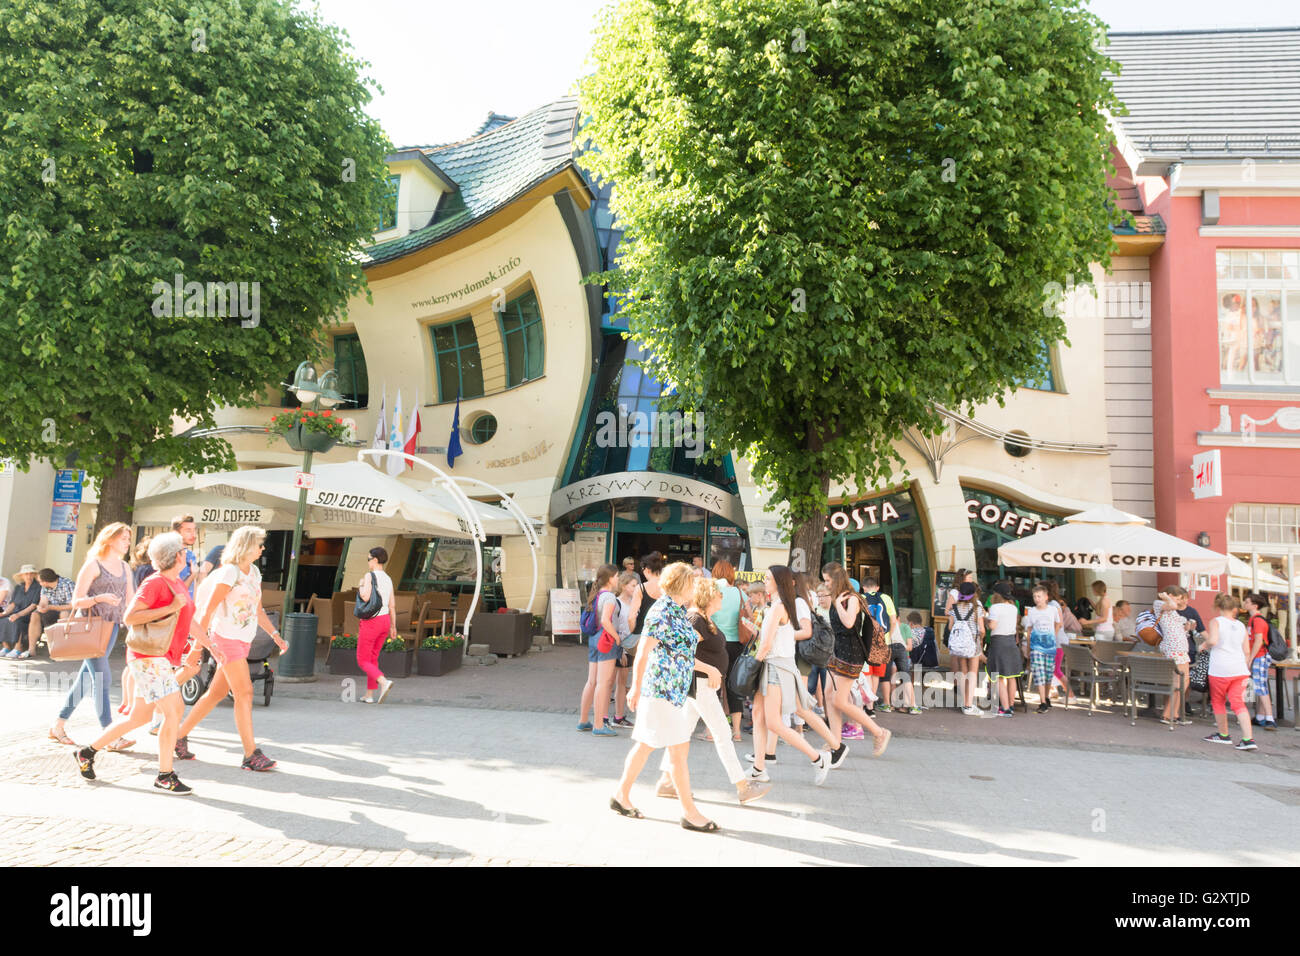 La maison tordue (Krzywy Domek Crooked House Sopot Costa Café dans l'Est de l'Occidentale, Pologne Photo Stock